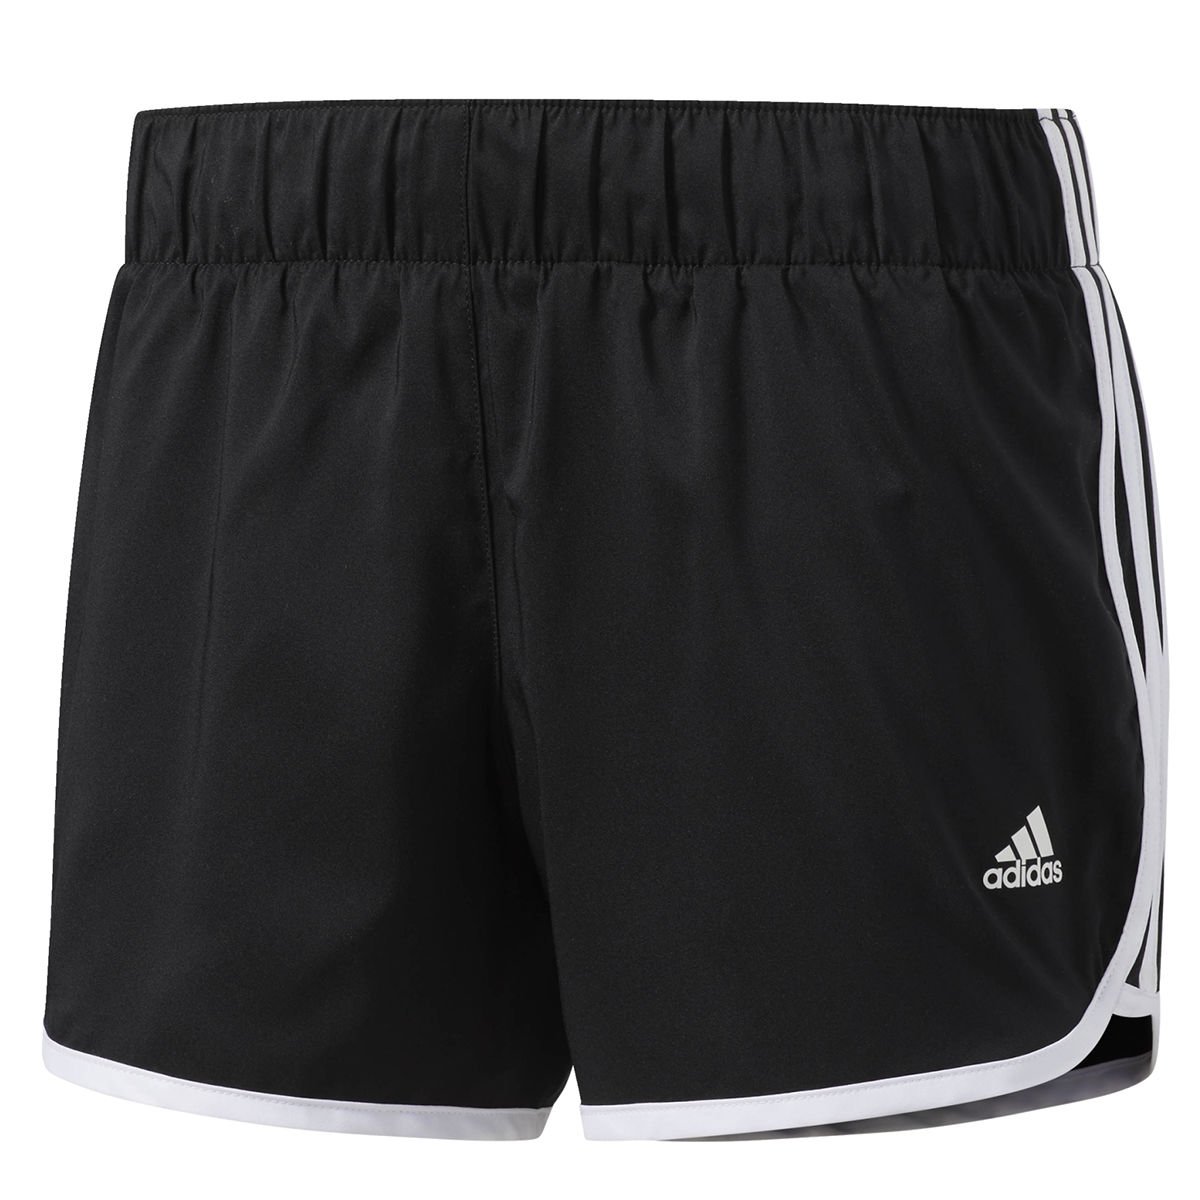 adidas M10 Womens Running Short [MSRP: $28.00]